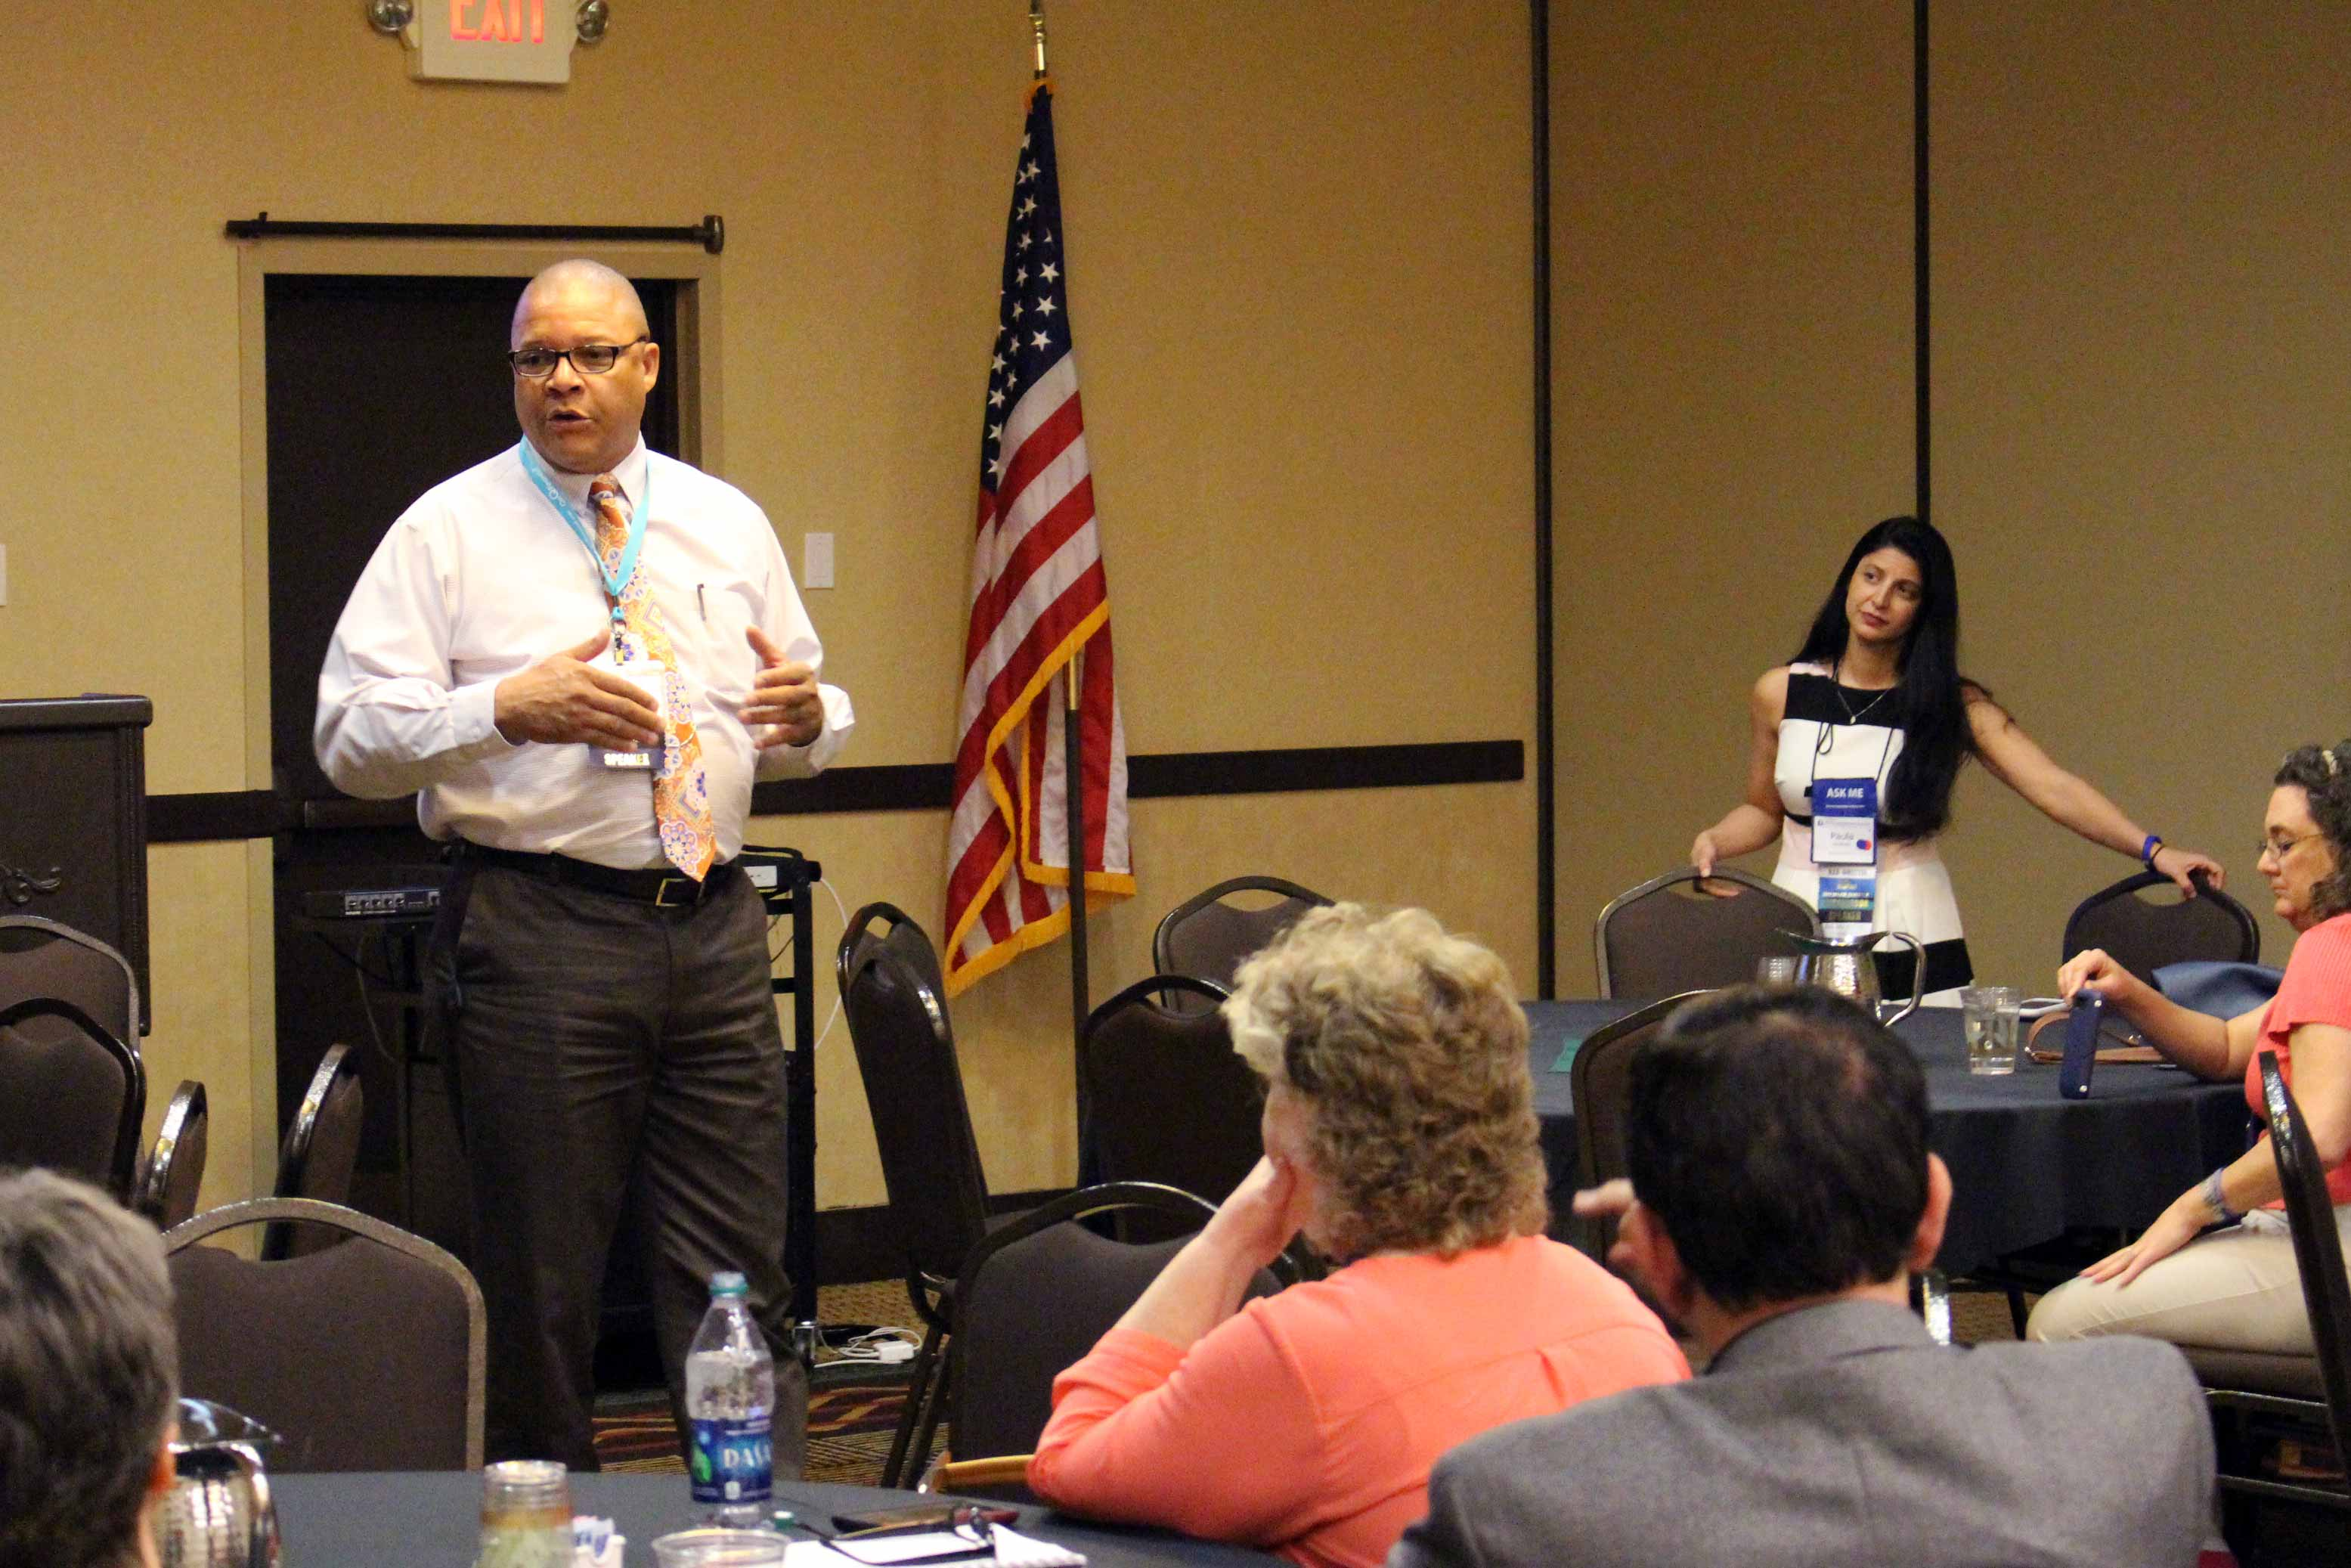 Eric Gibbs, Sr. promotes REALTOR® Safety during the 2016 Spring Conference.